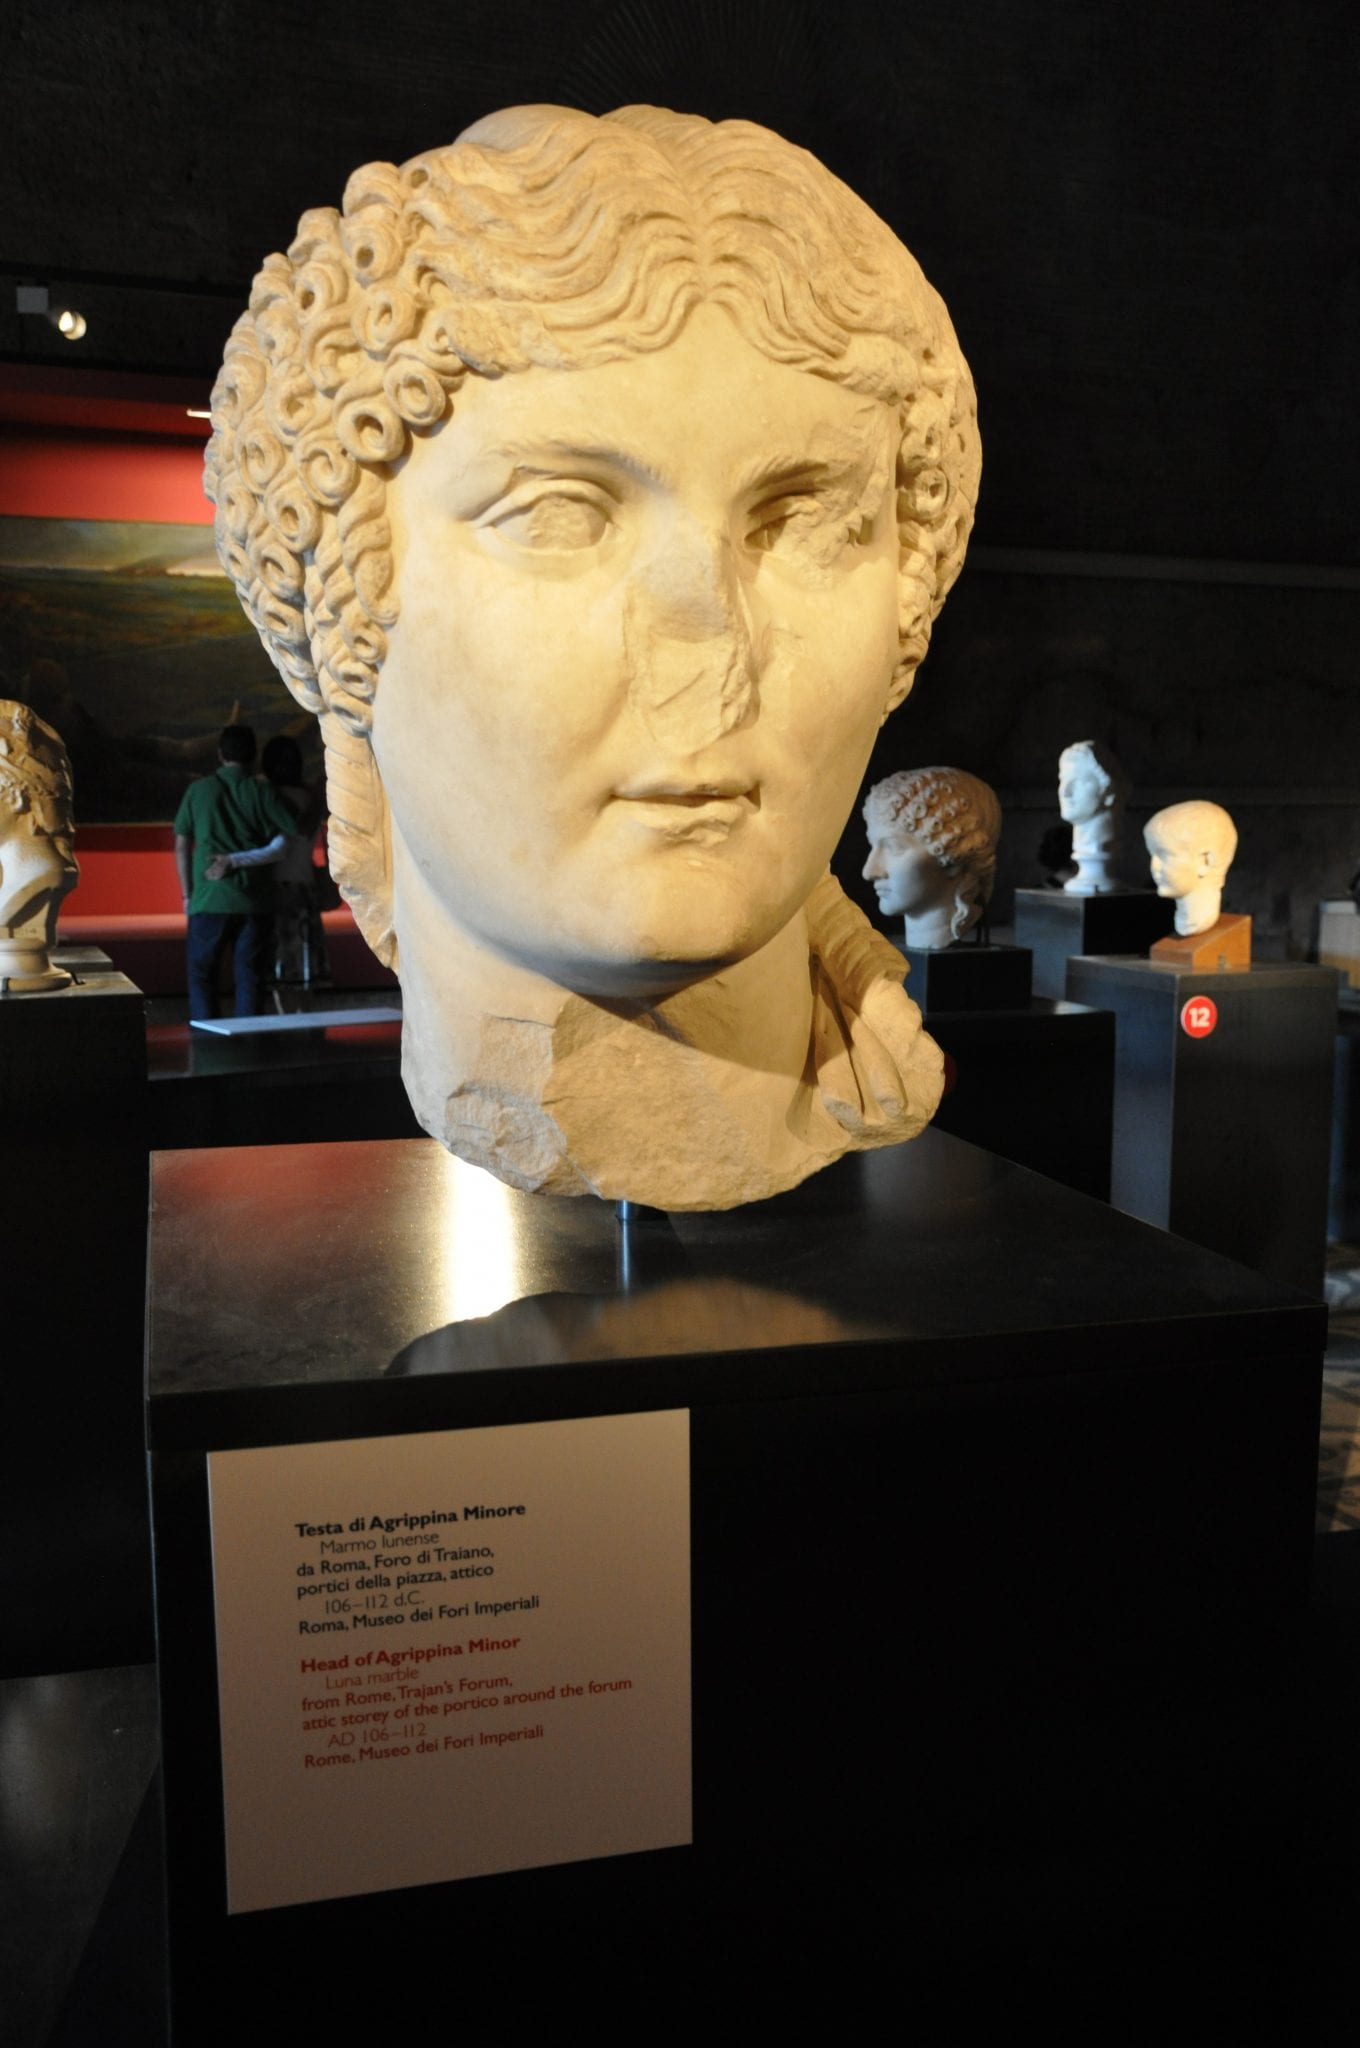 The mother of Nero, one of the worst Roman emperors